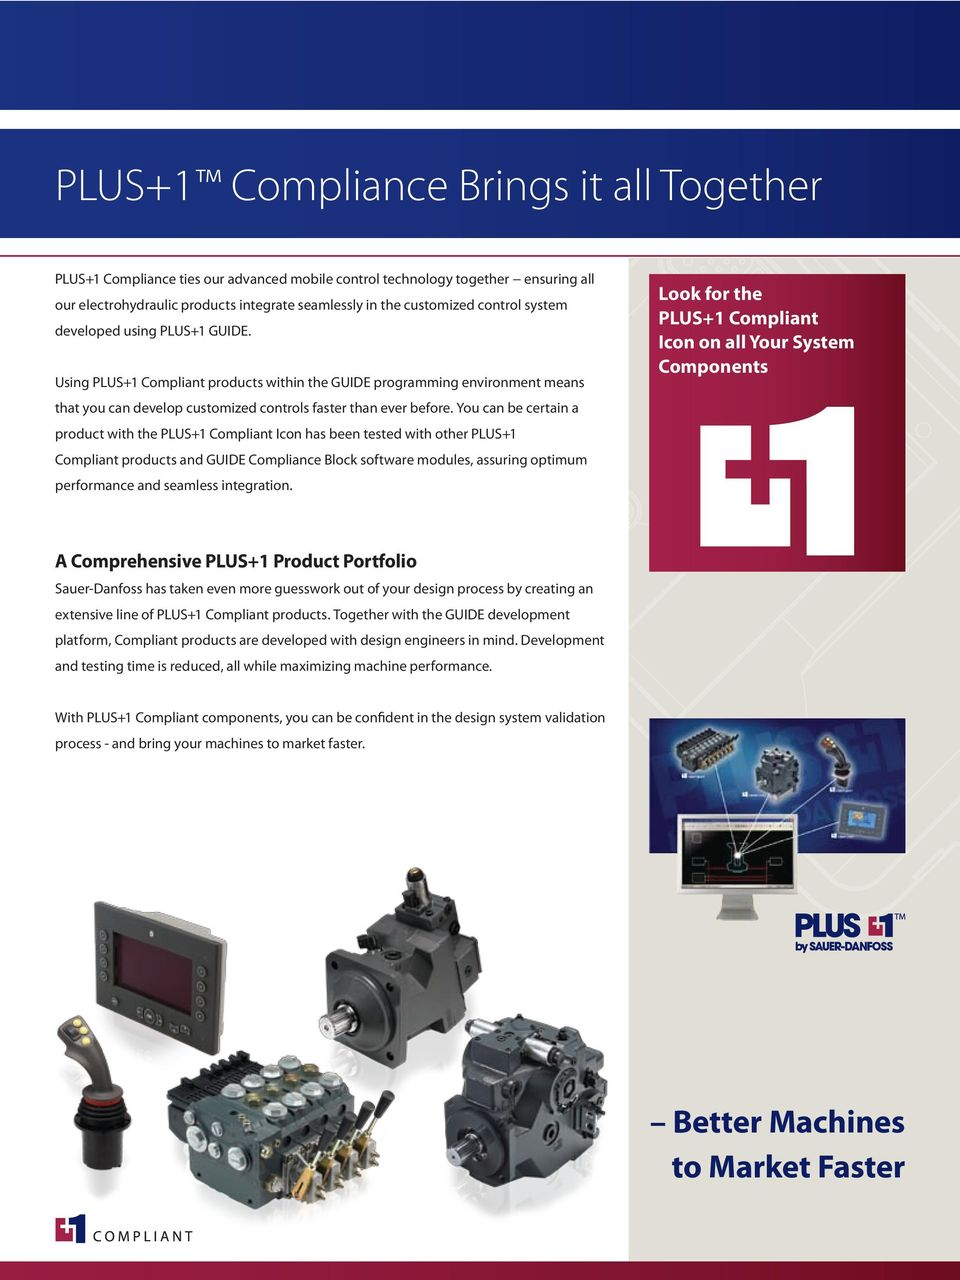 You can be certain a product with the PLUS+1 Compliant Icon has been tested with other PLUS+1 Compliant products and GUIDE Compliance Block software modules, assuring optimum performance and seamless